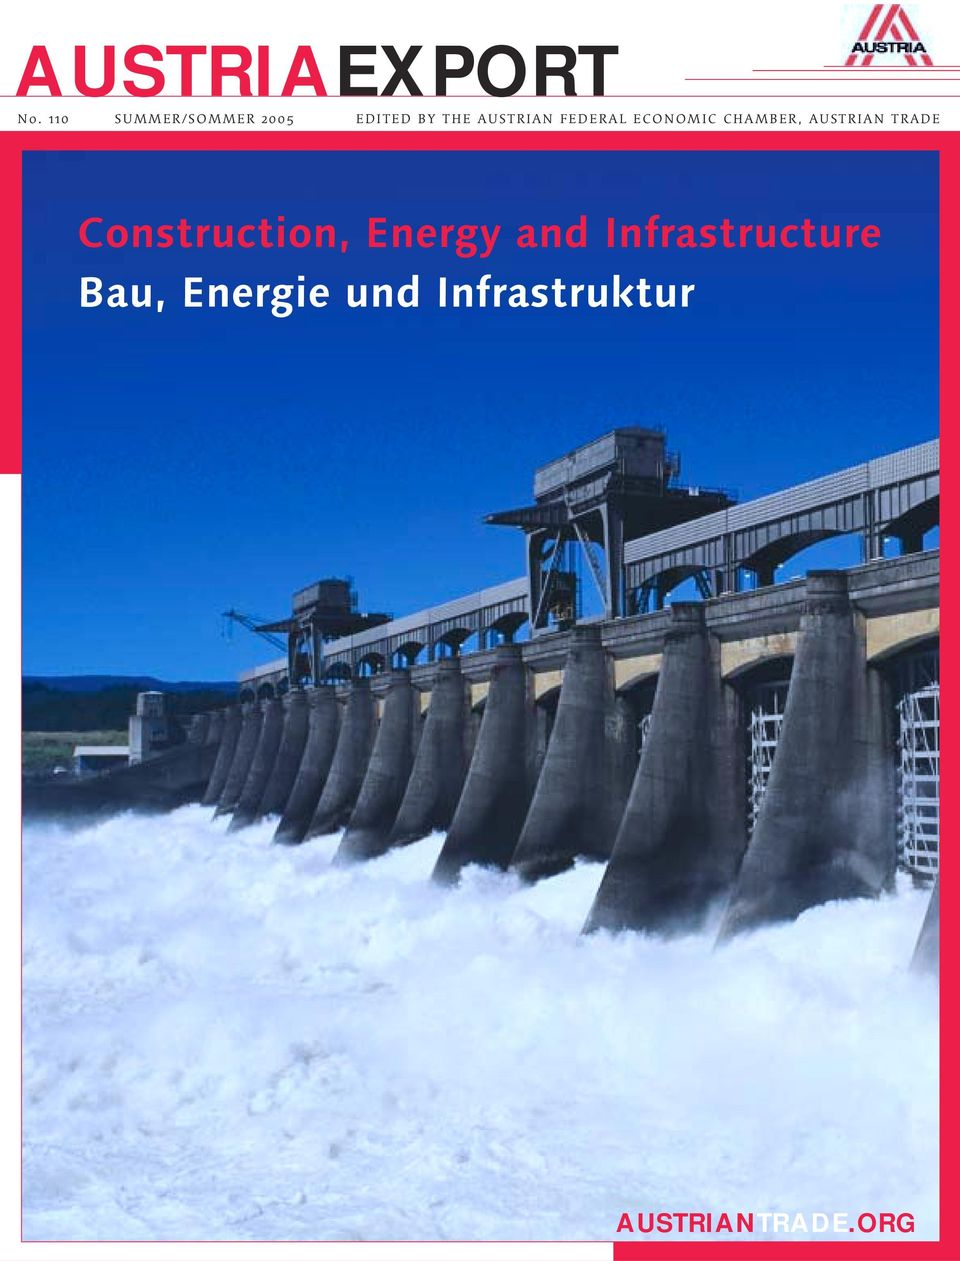 Energy and Infrastructure Bau, Energie und